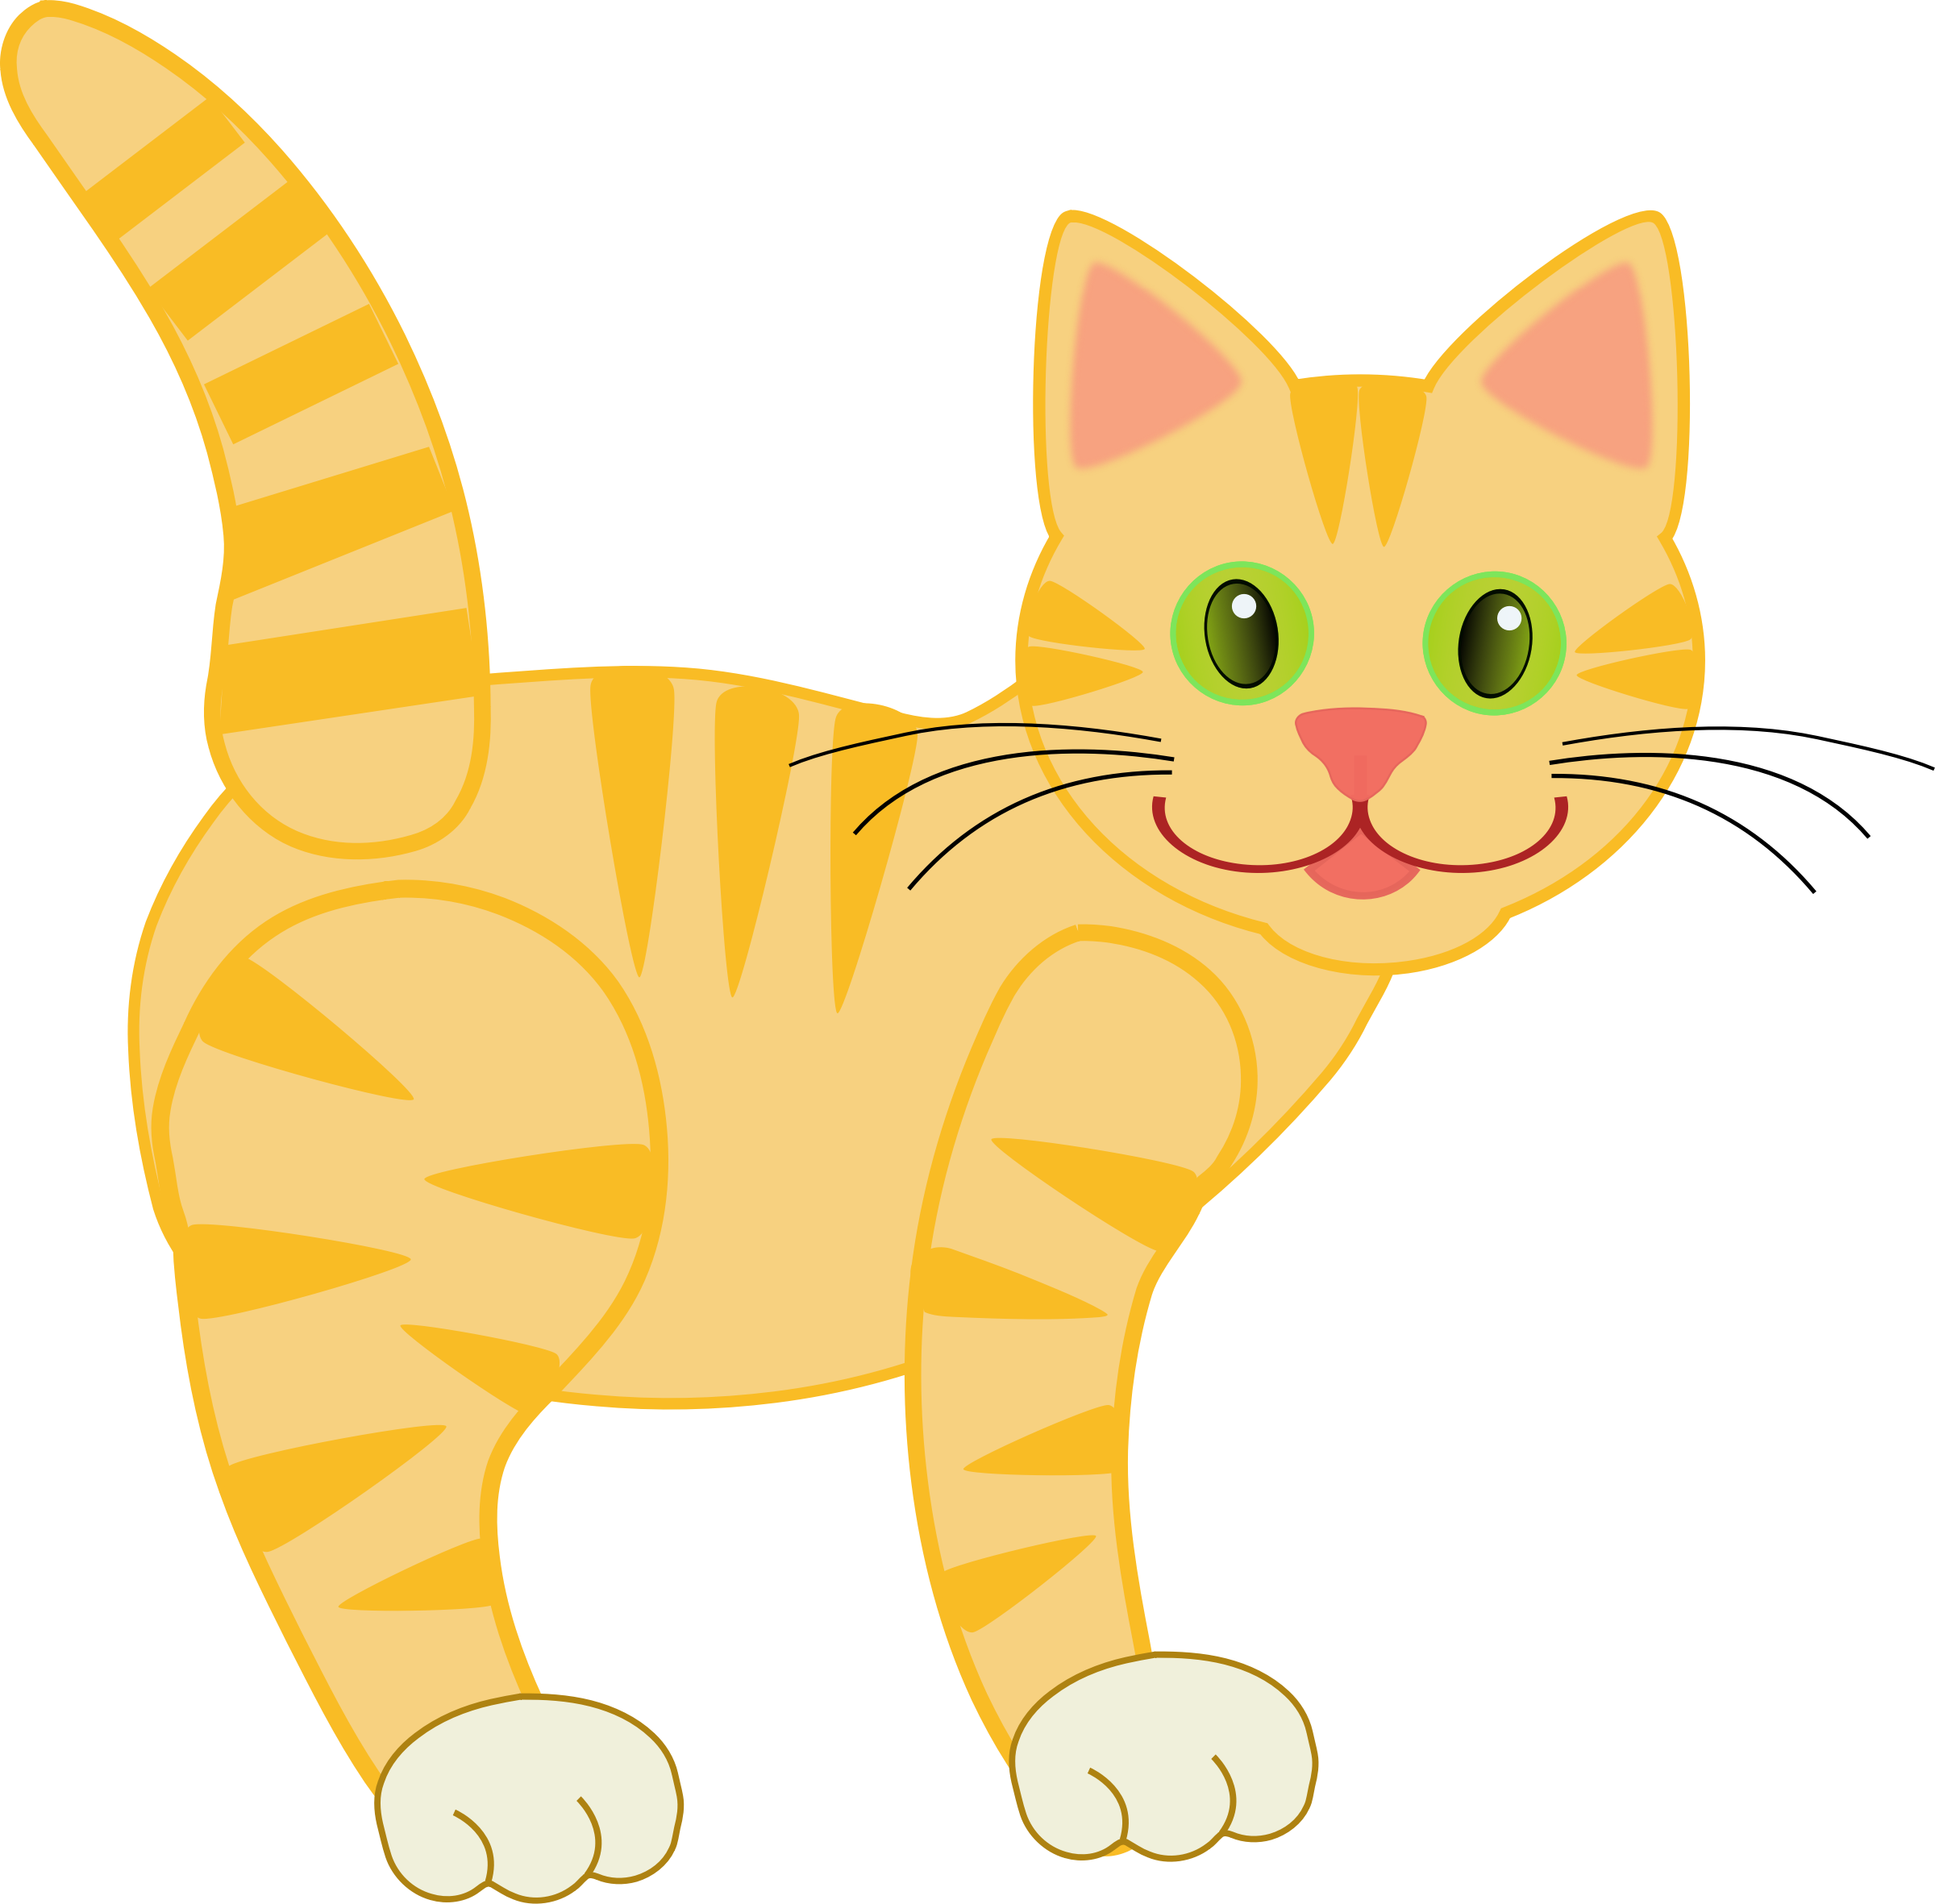 Purple cat clipart cute picture royalty free download Yellow Tiger Cat by Deb53 | Kittens | Pinterest | Tigers and Cat picture royalty free download